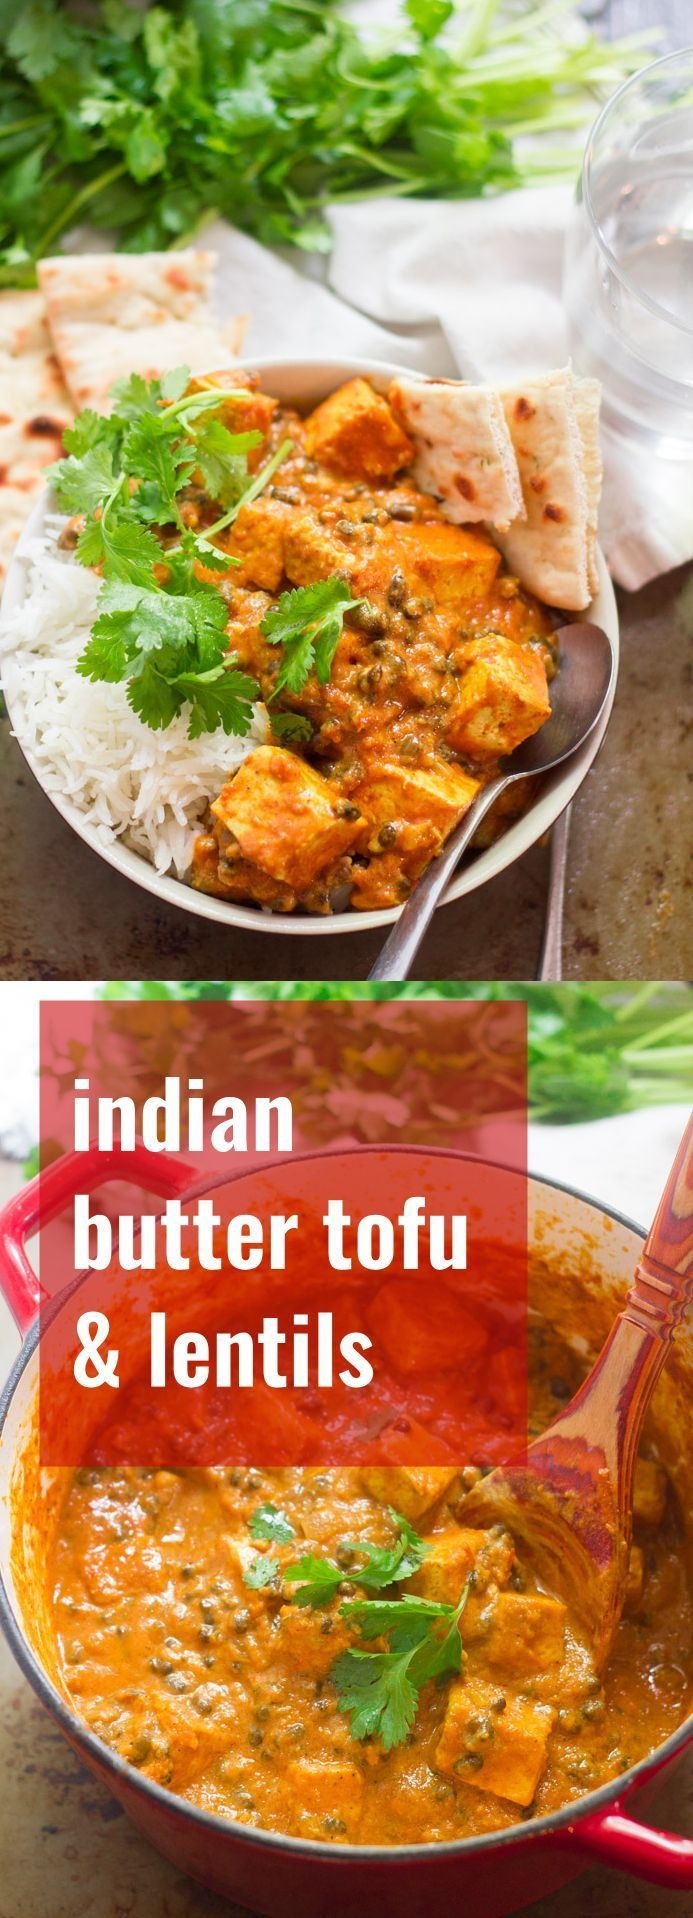 Pan fried tofu and tender black lentils are simmered in spicy tomato sauce with creamy dairy-free yogurt to make this flavorful Indian-inspired vegan curry.